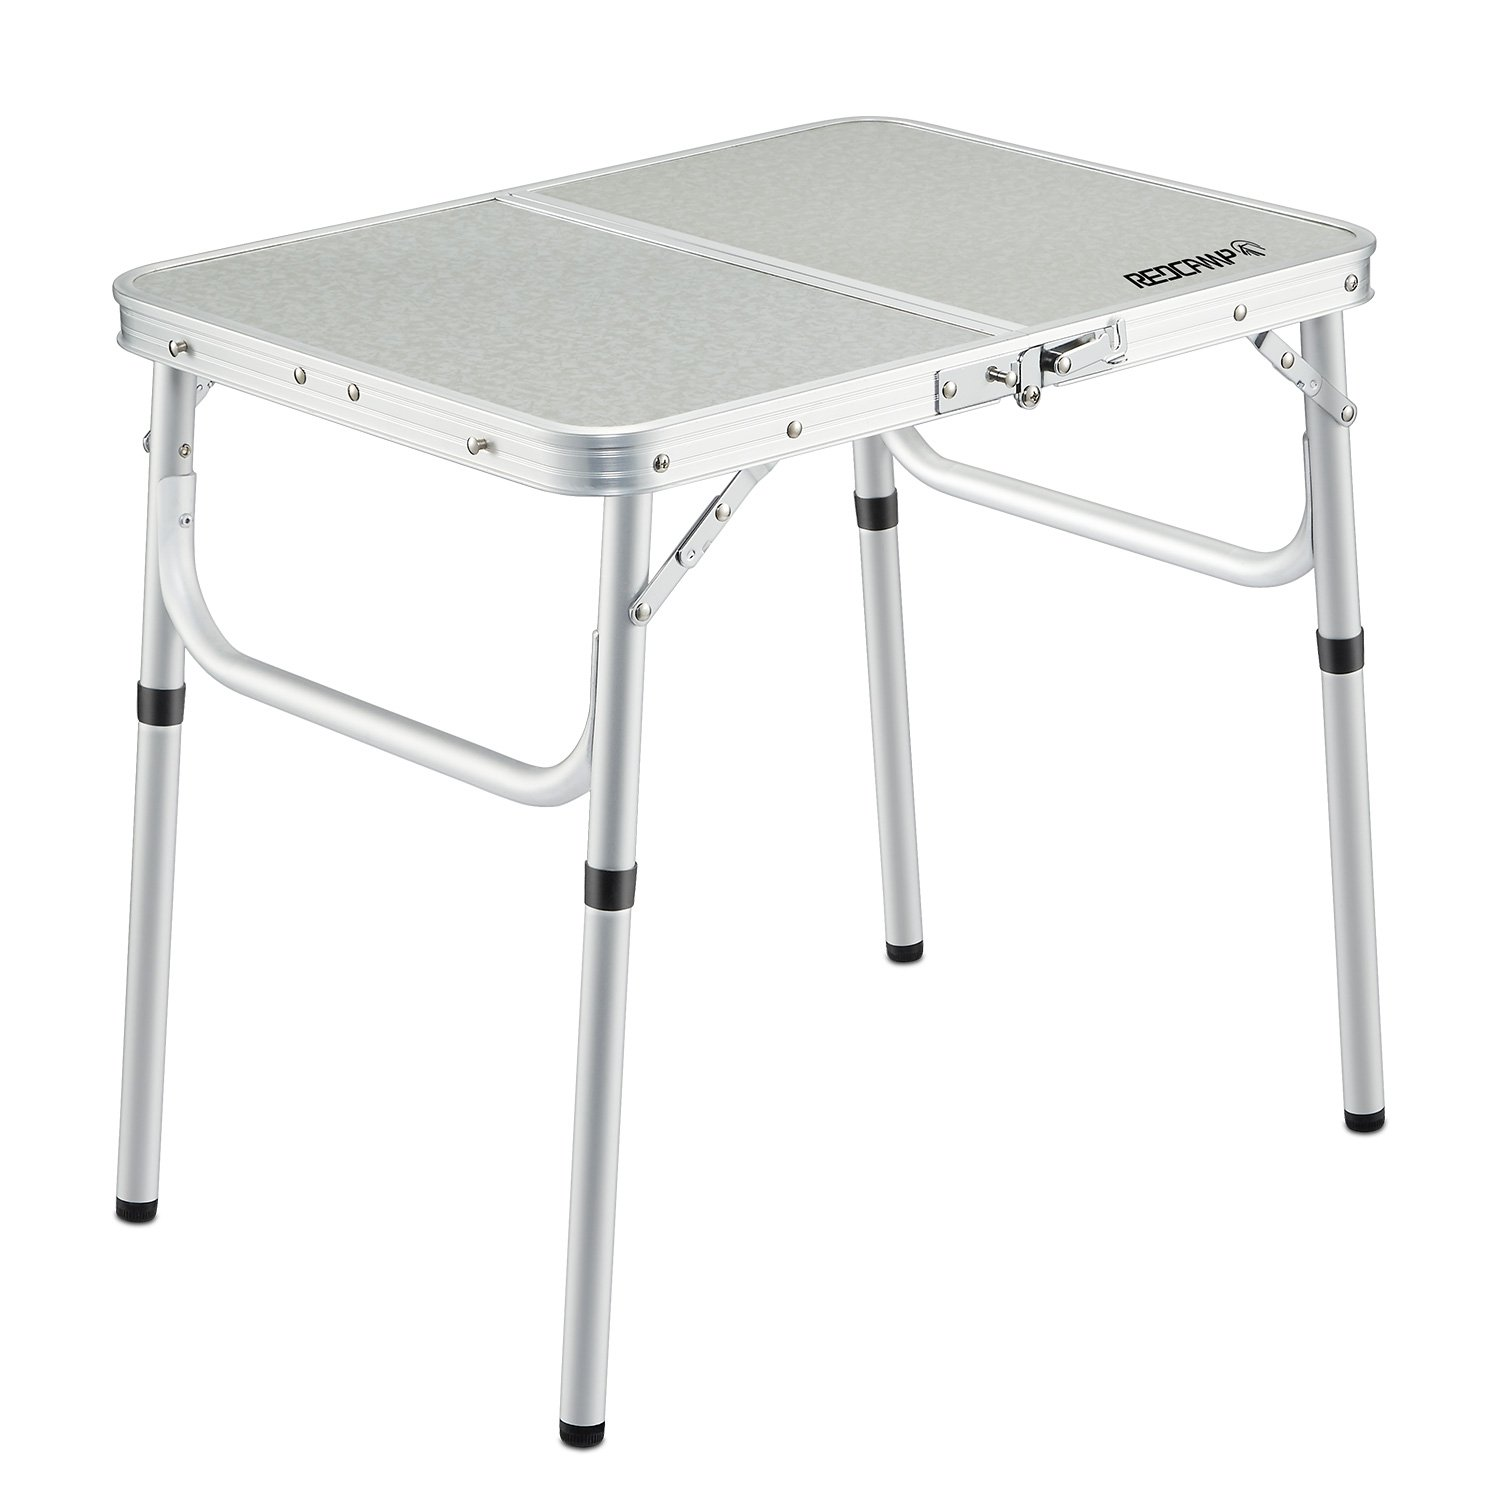 REDCAMP Small Folding Table Adjustable Height 23.6''x15.7''x10.2''/19'', Aluminum Camping Table Lightweight by REDCAMP